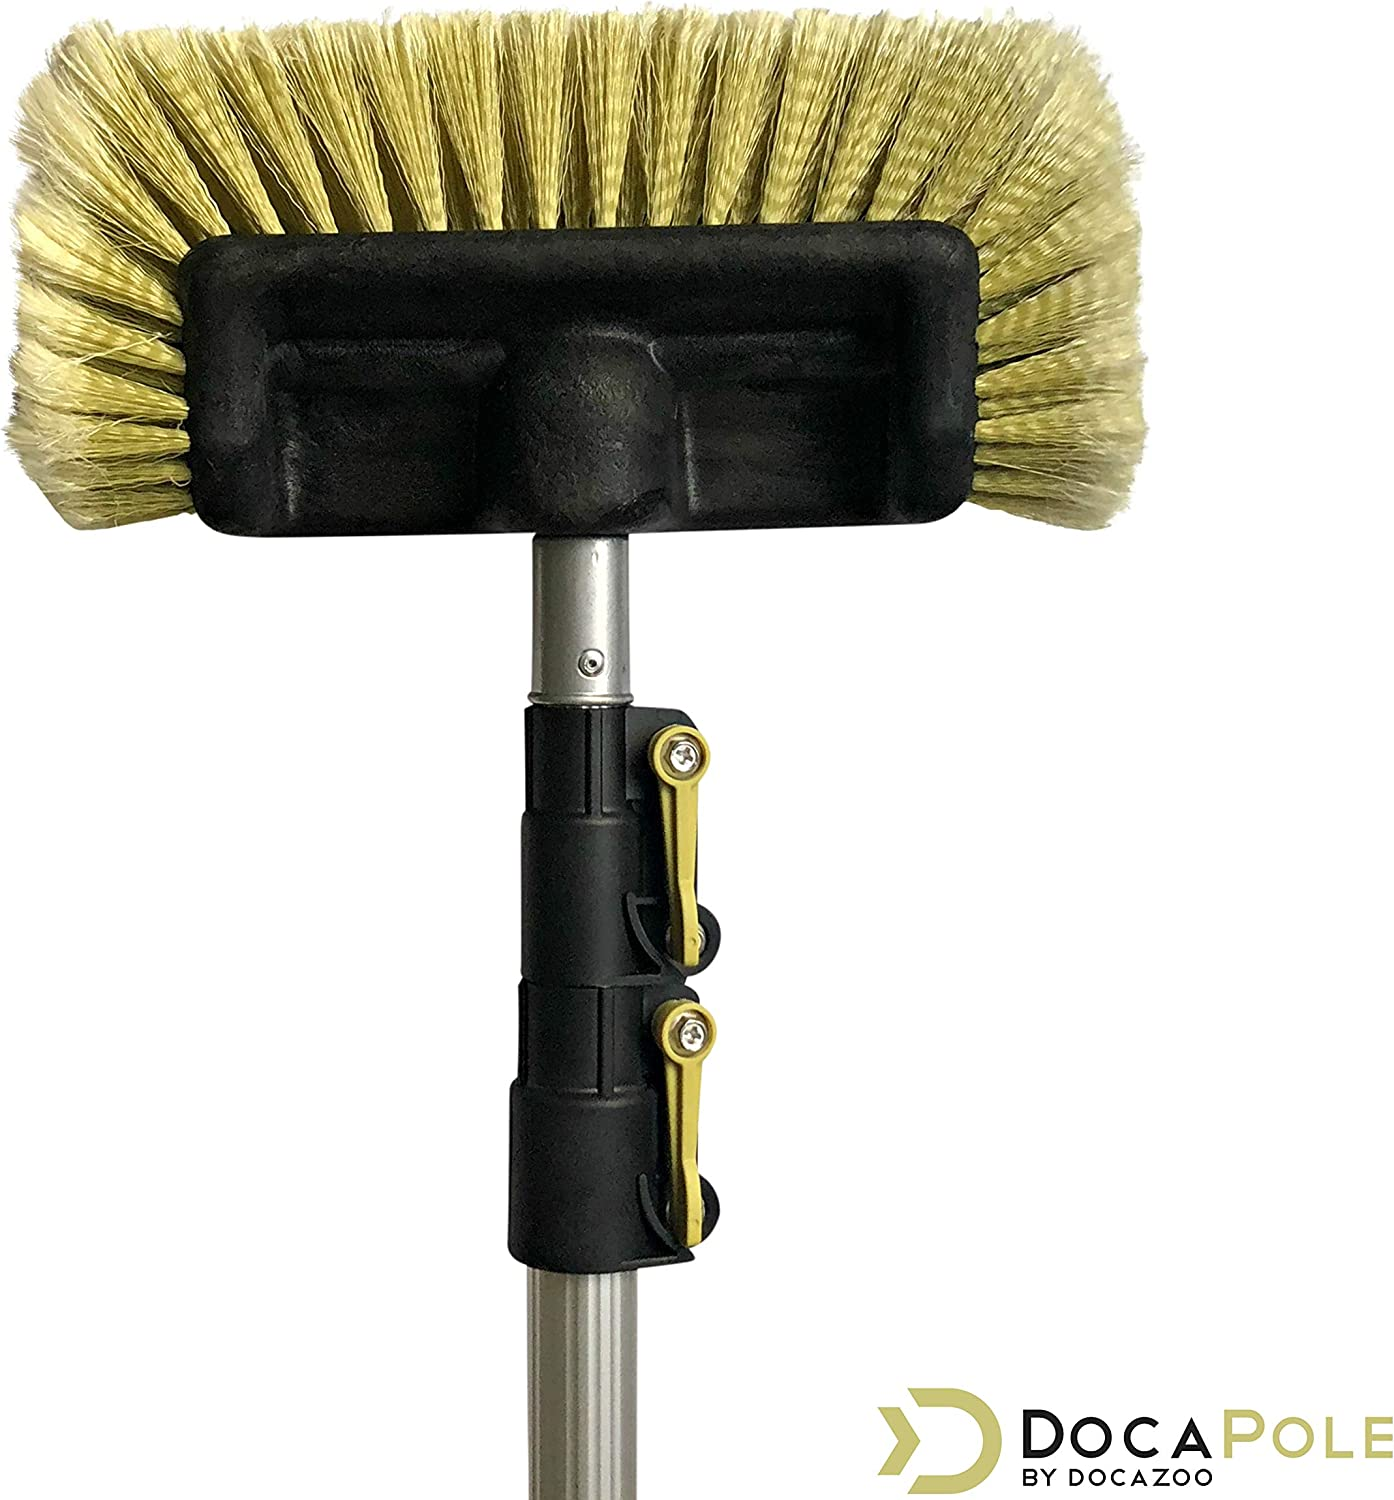 Doca Pole 5-12' Soft Bristle Car Wash Brush & Extension Pole